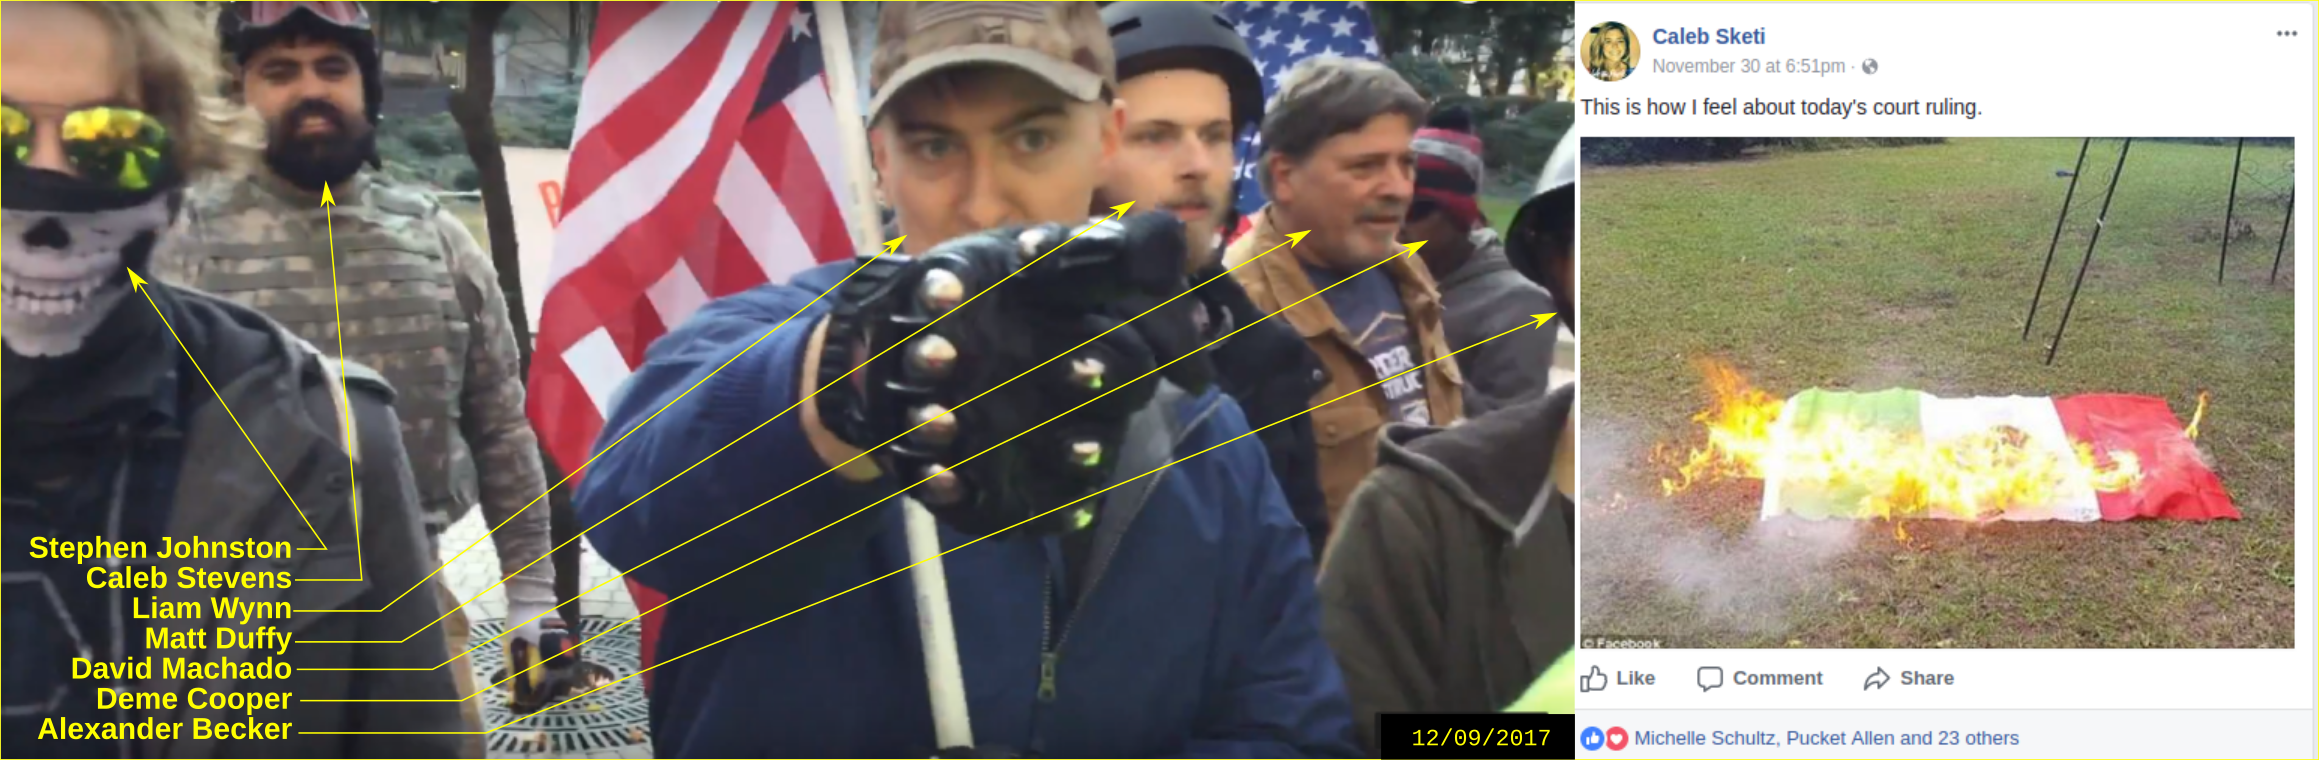 Caleb Stevens participates in an anti-immigrant hate rally